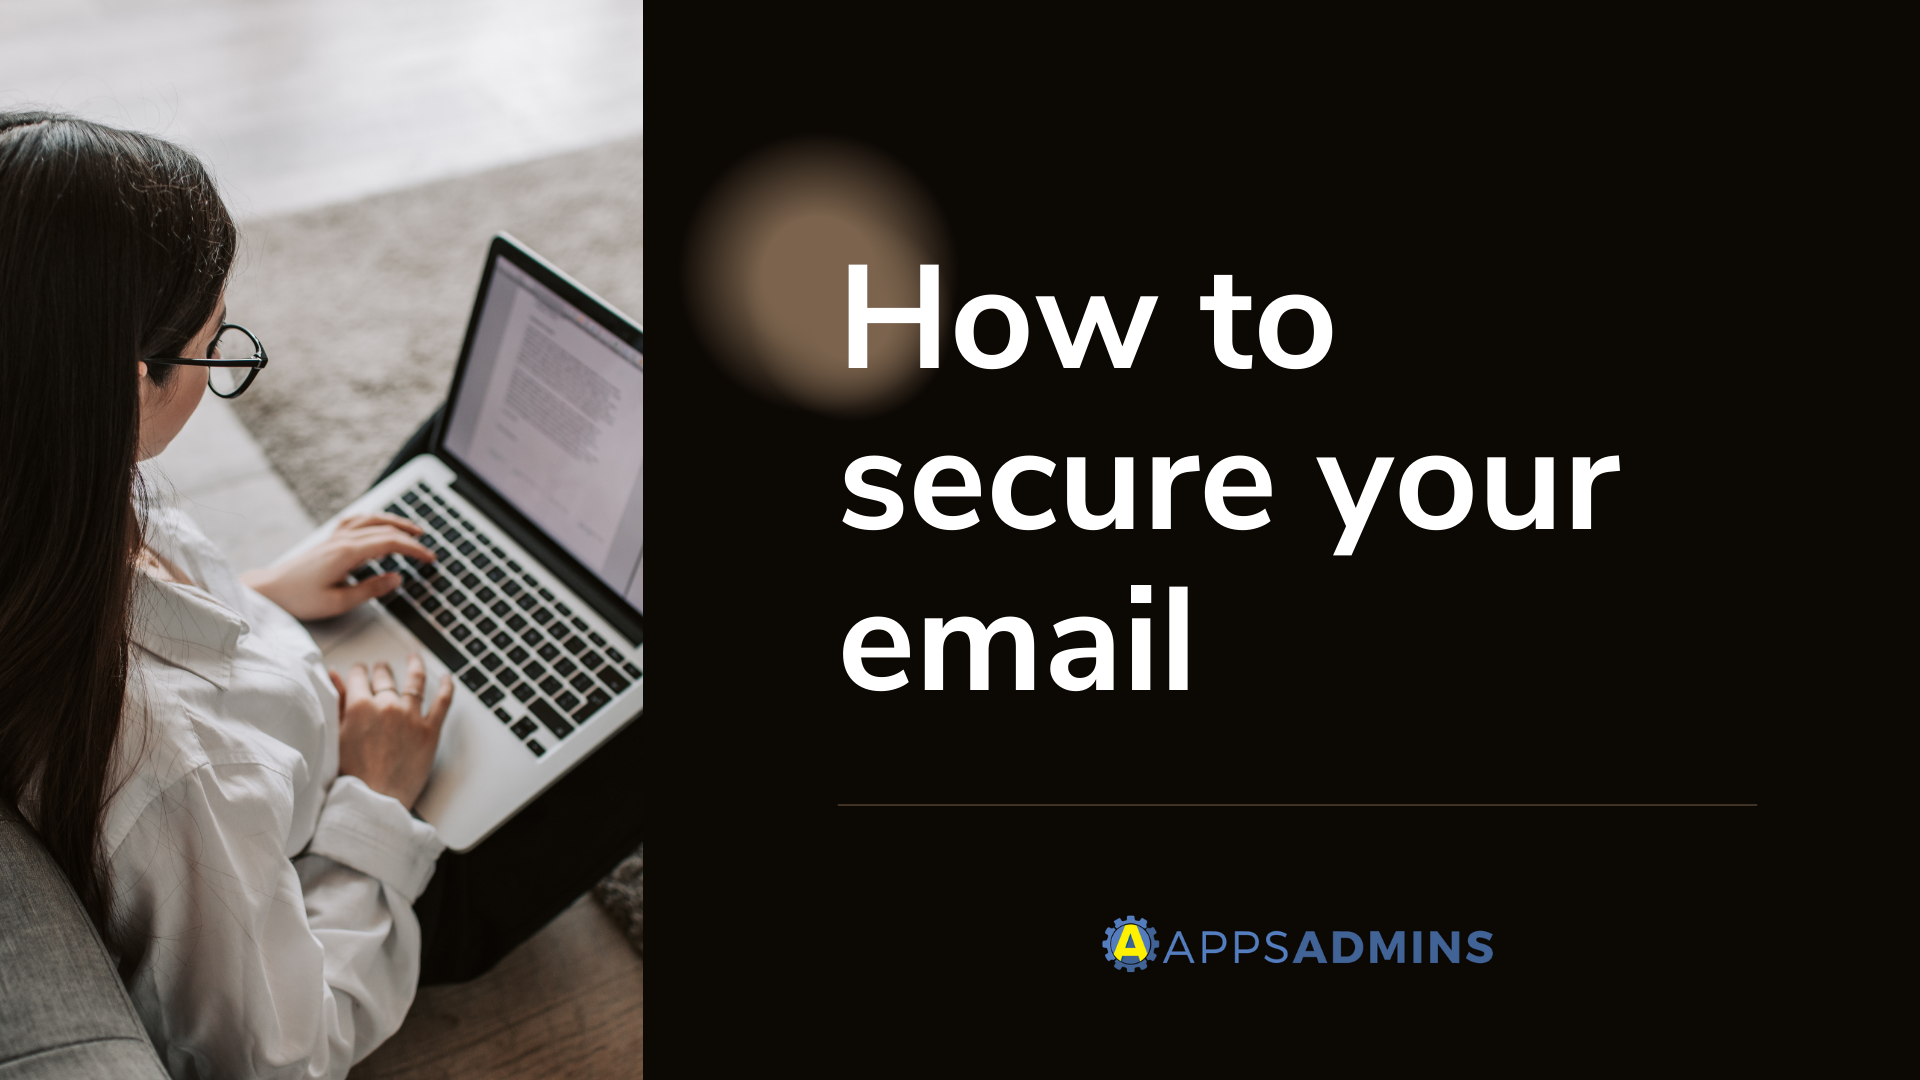 How to secure your email